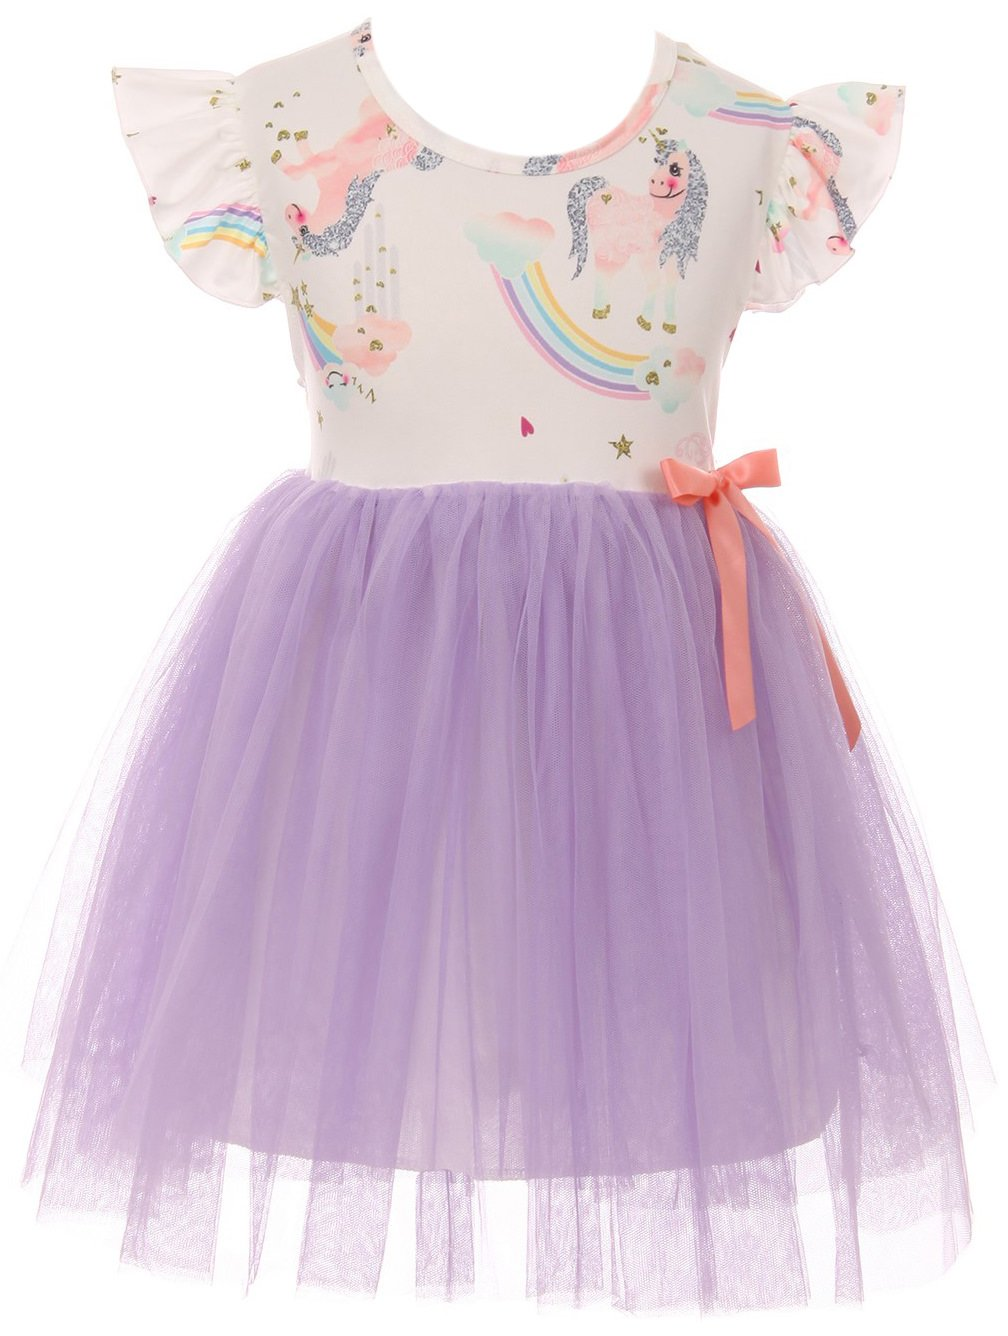 Little Girl Cap Sleeve Unicorn Print Tulle Casual Party Dress Lilac 5 L 201296